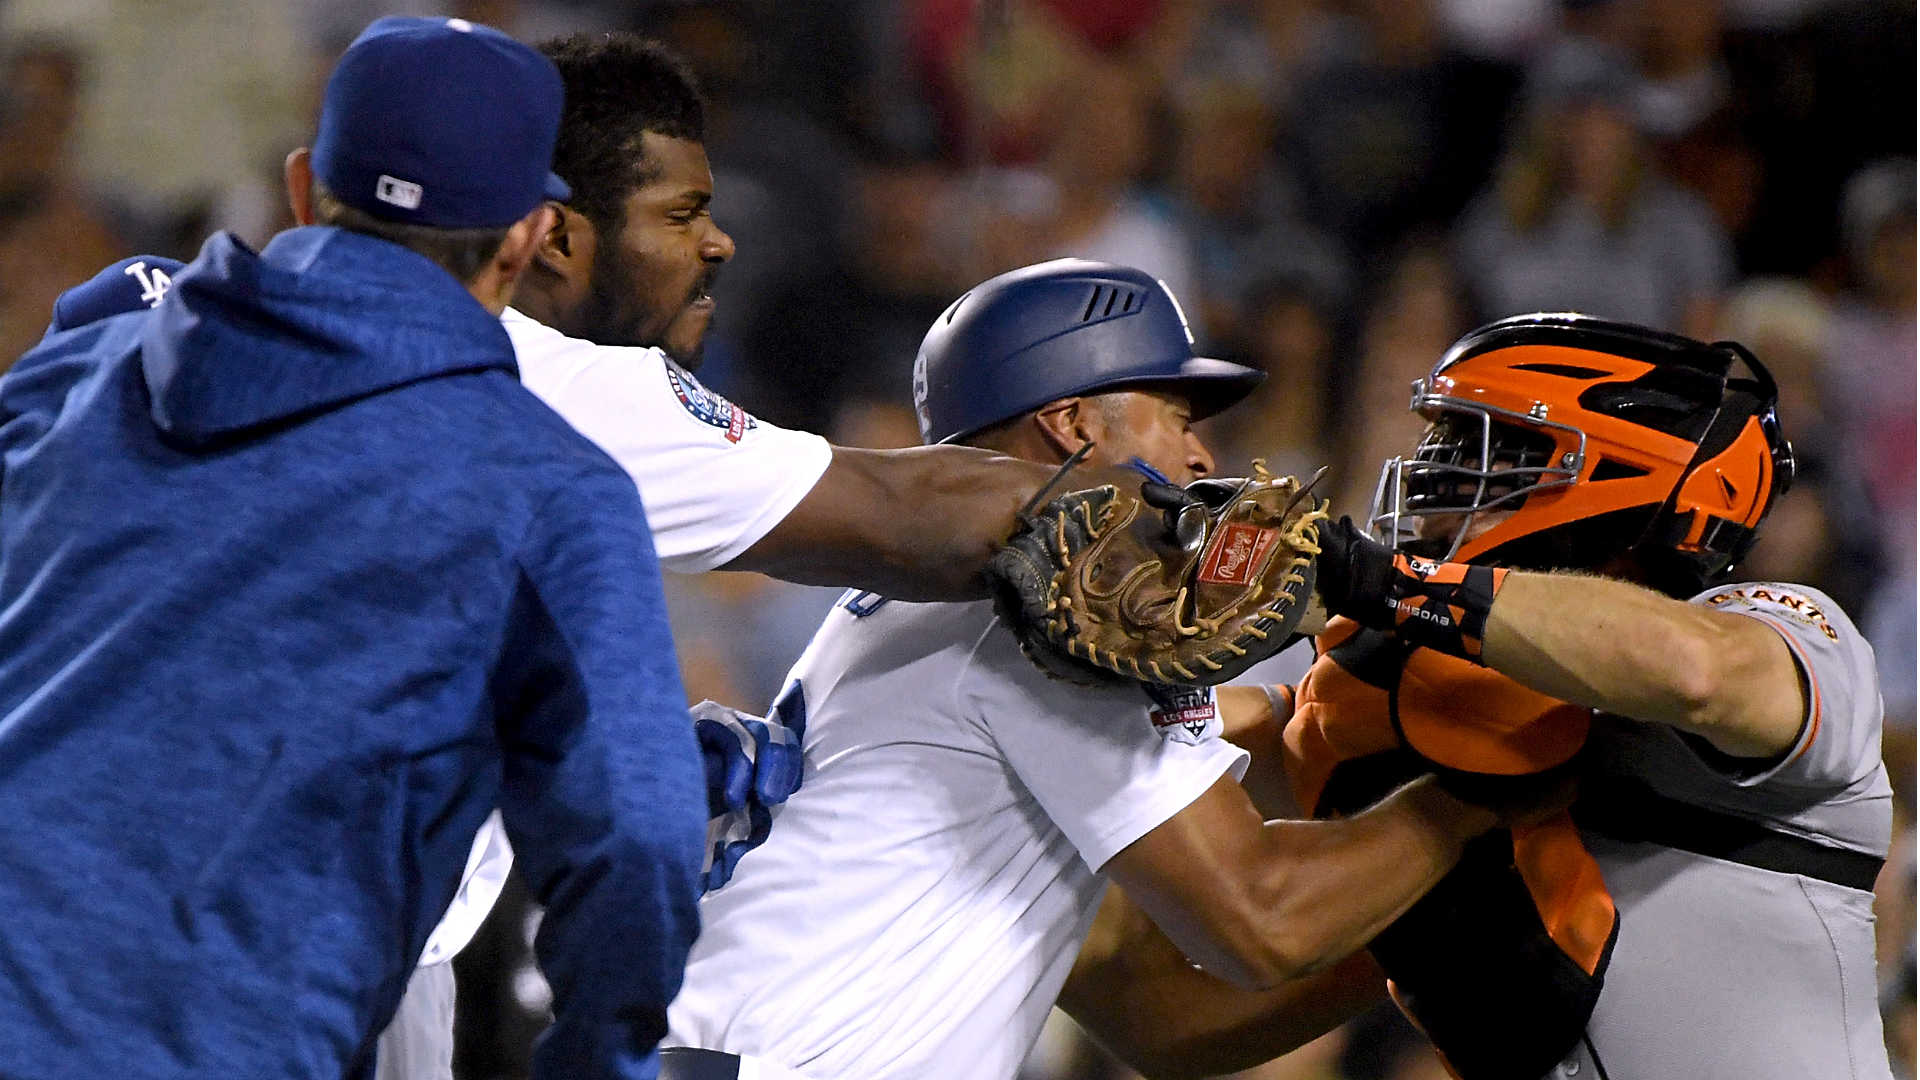 Yasiel Puig, Nick Hundley ejected after starting fight